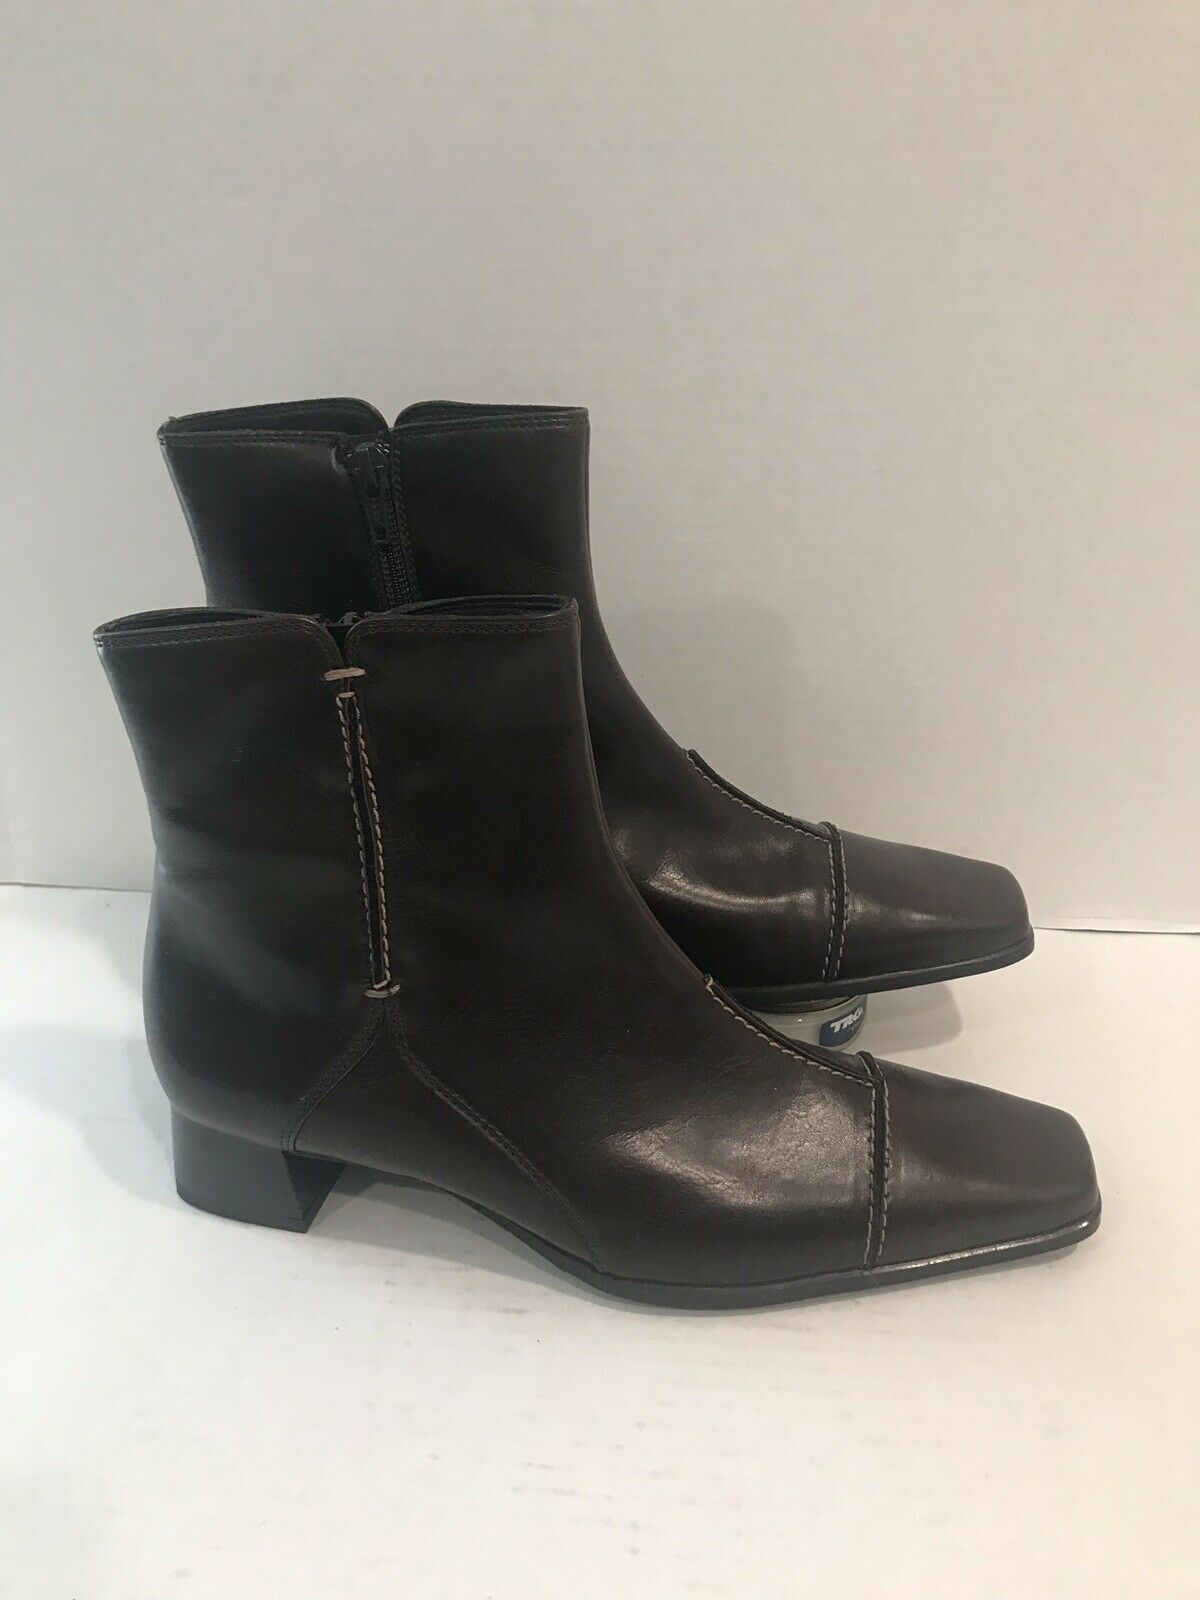 Paul Green Munchen Brown Leather Ankle Boots Size 5 UK 7.5 US Side Zipper